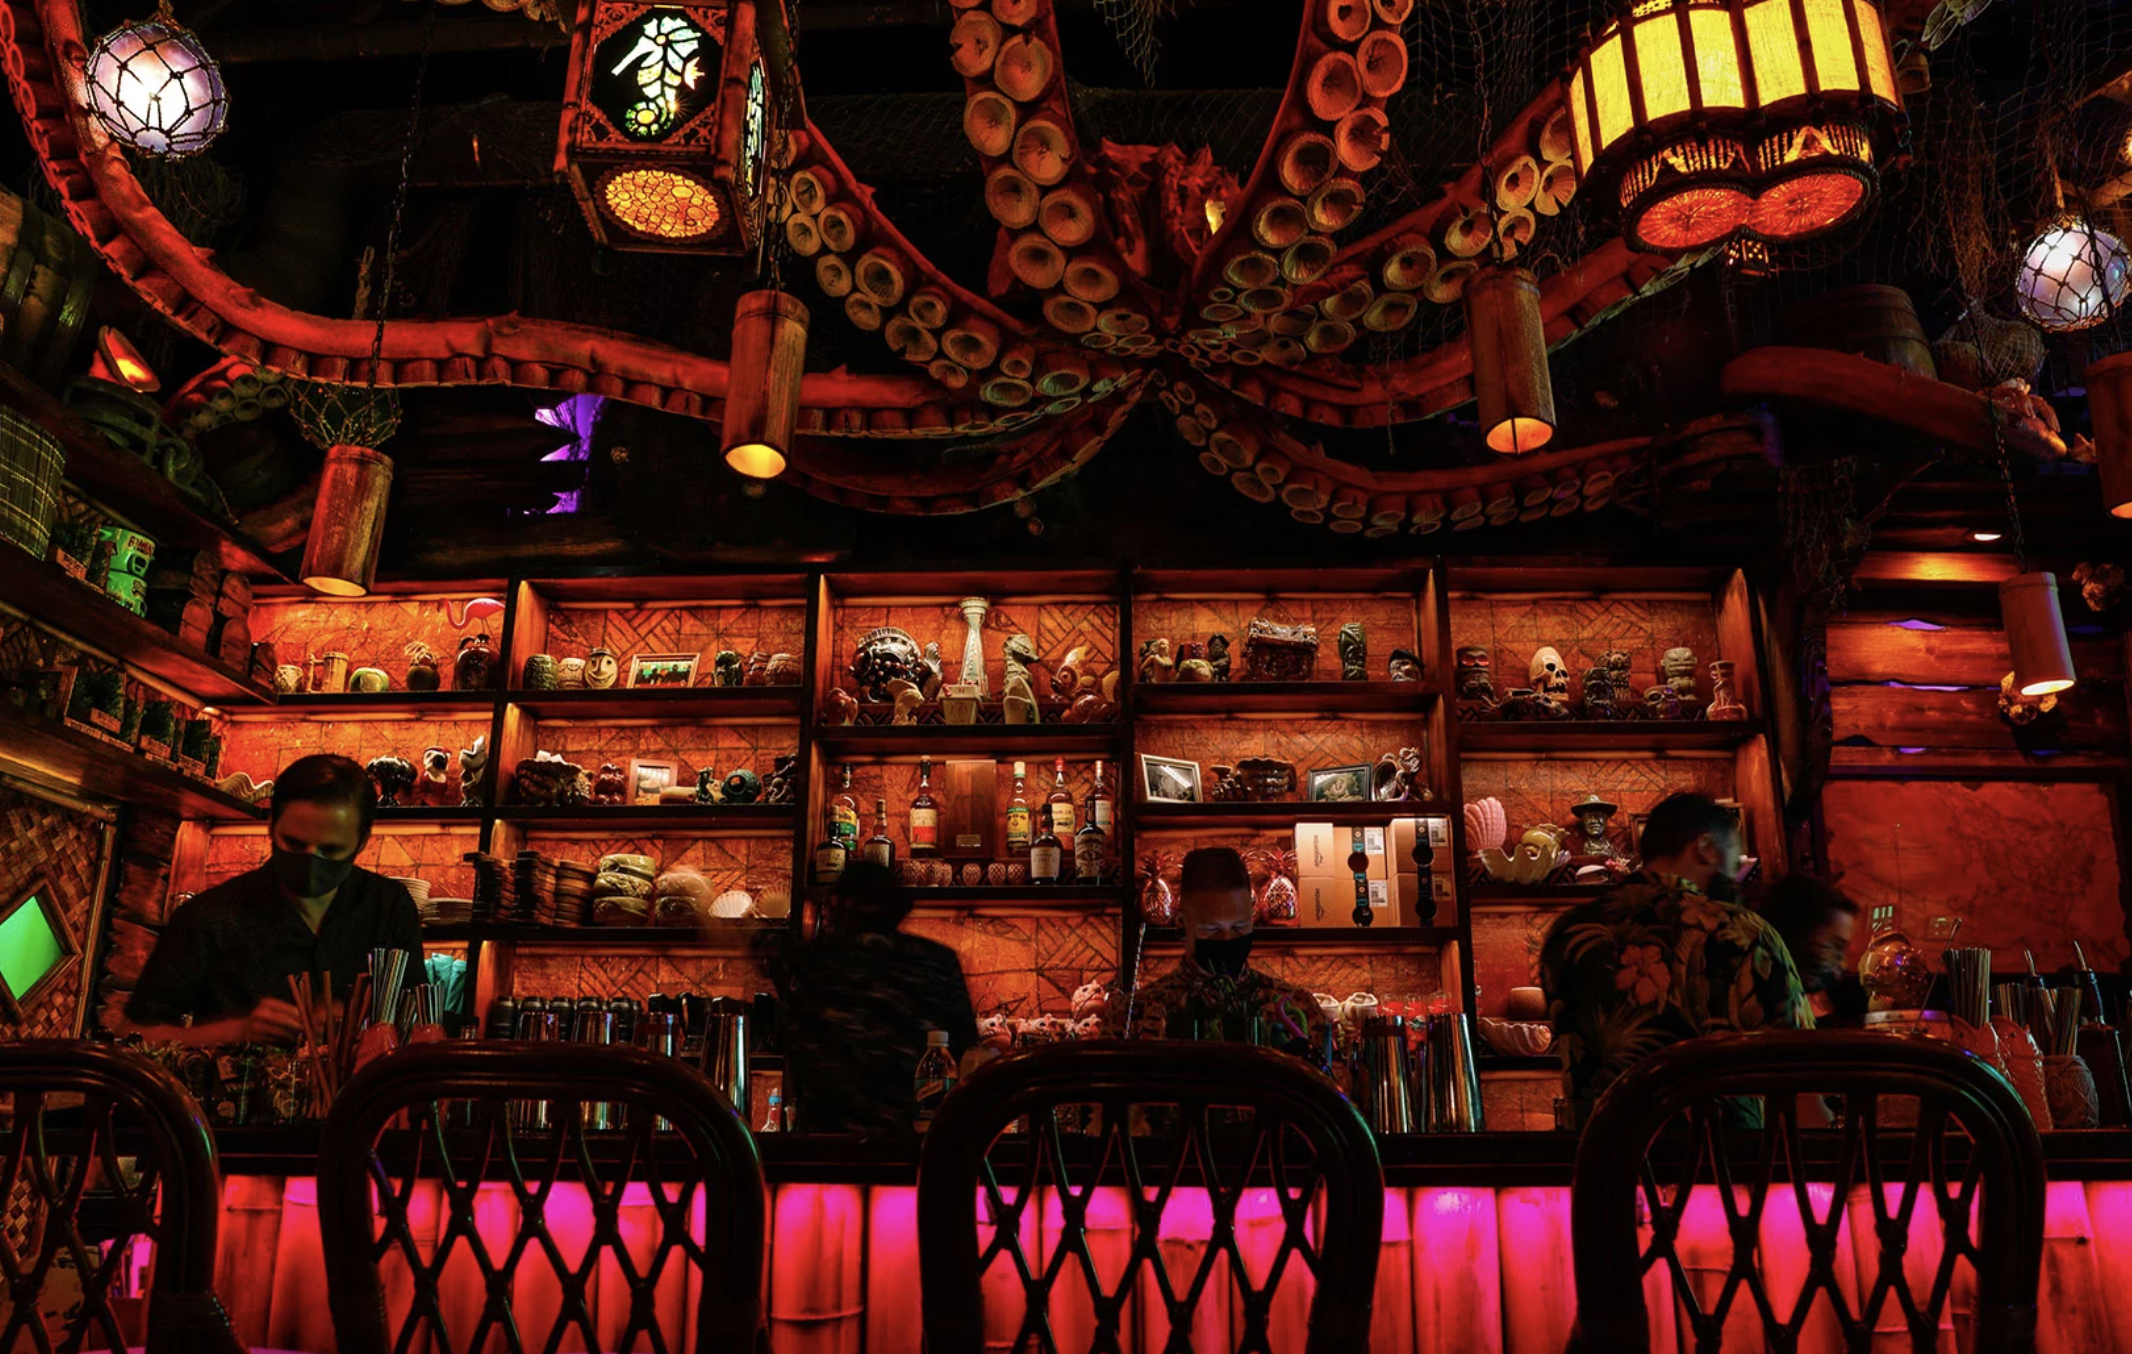 The low-lit interior of Capitol Hill bar Inside Passage, with four masked bartenders behind the bar; a giant tentacled octopus is hanging from the ceiling; in the background is a display case with a variety of intricately decorated mugs